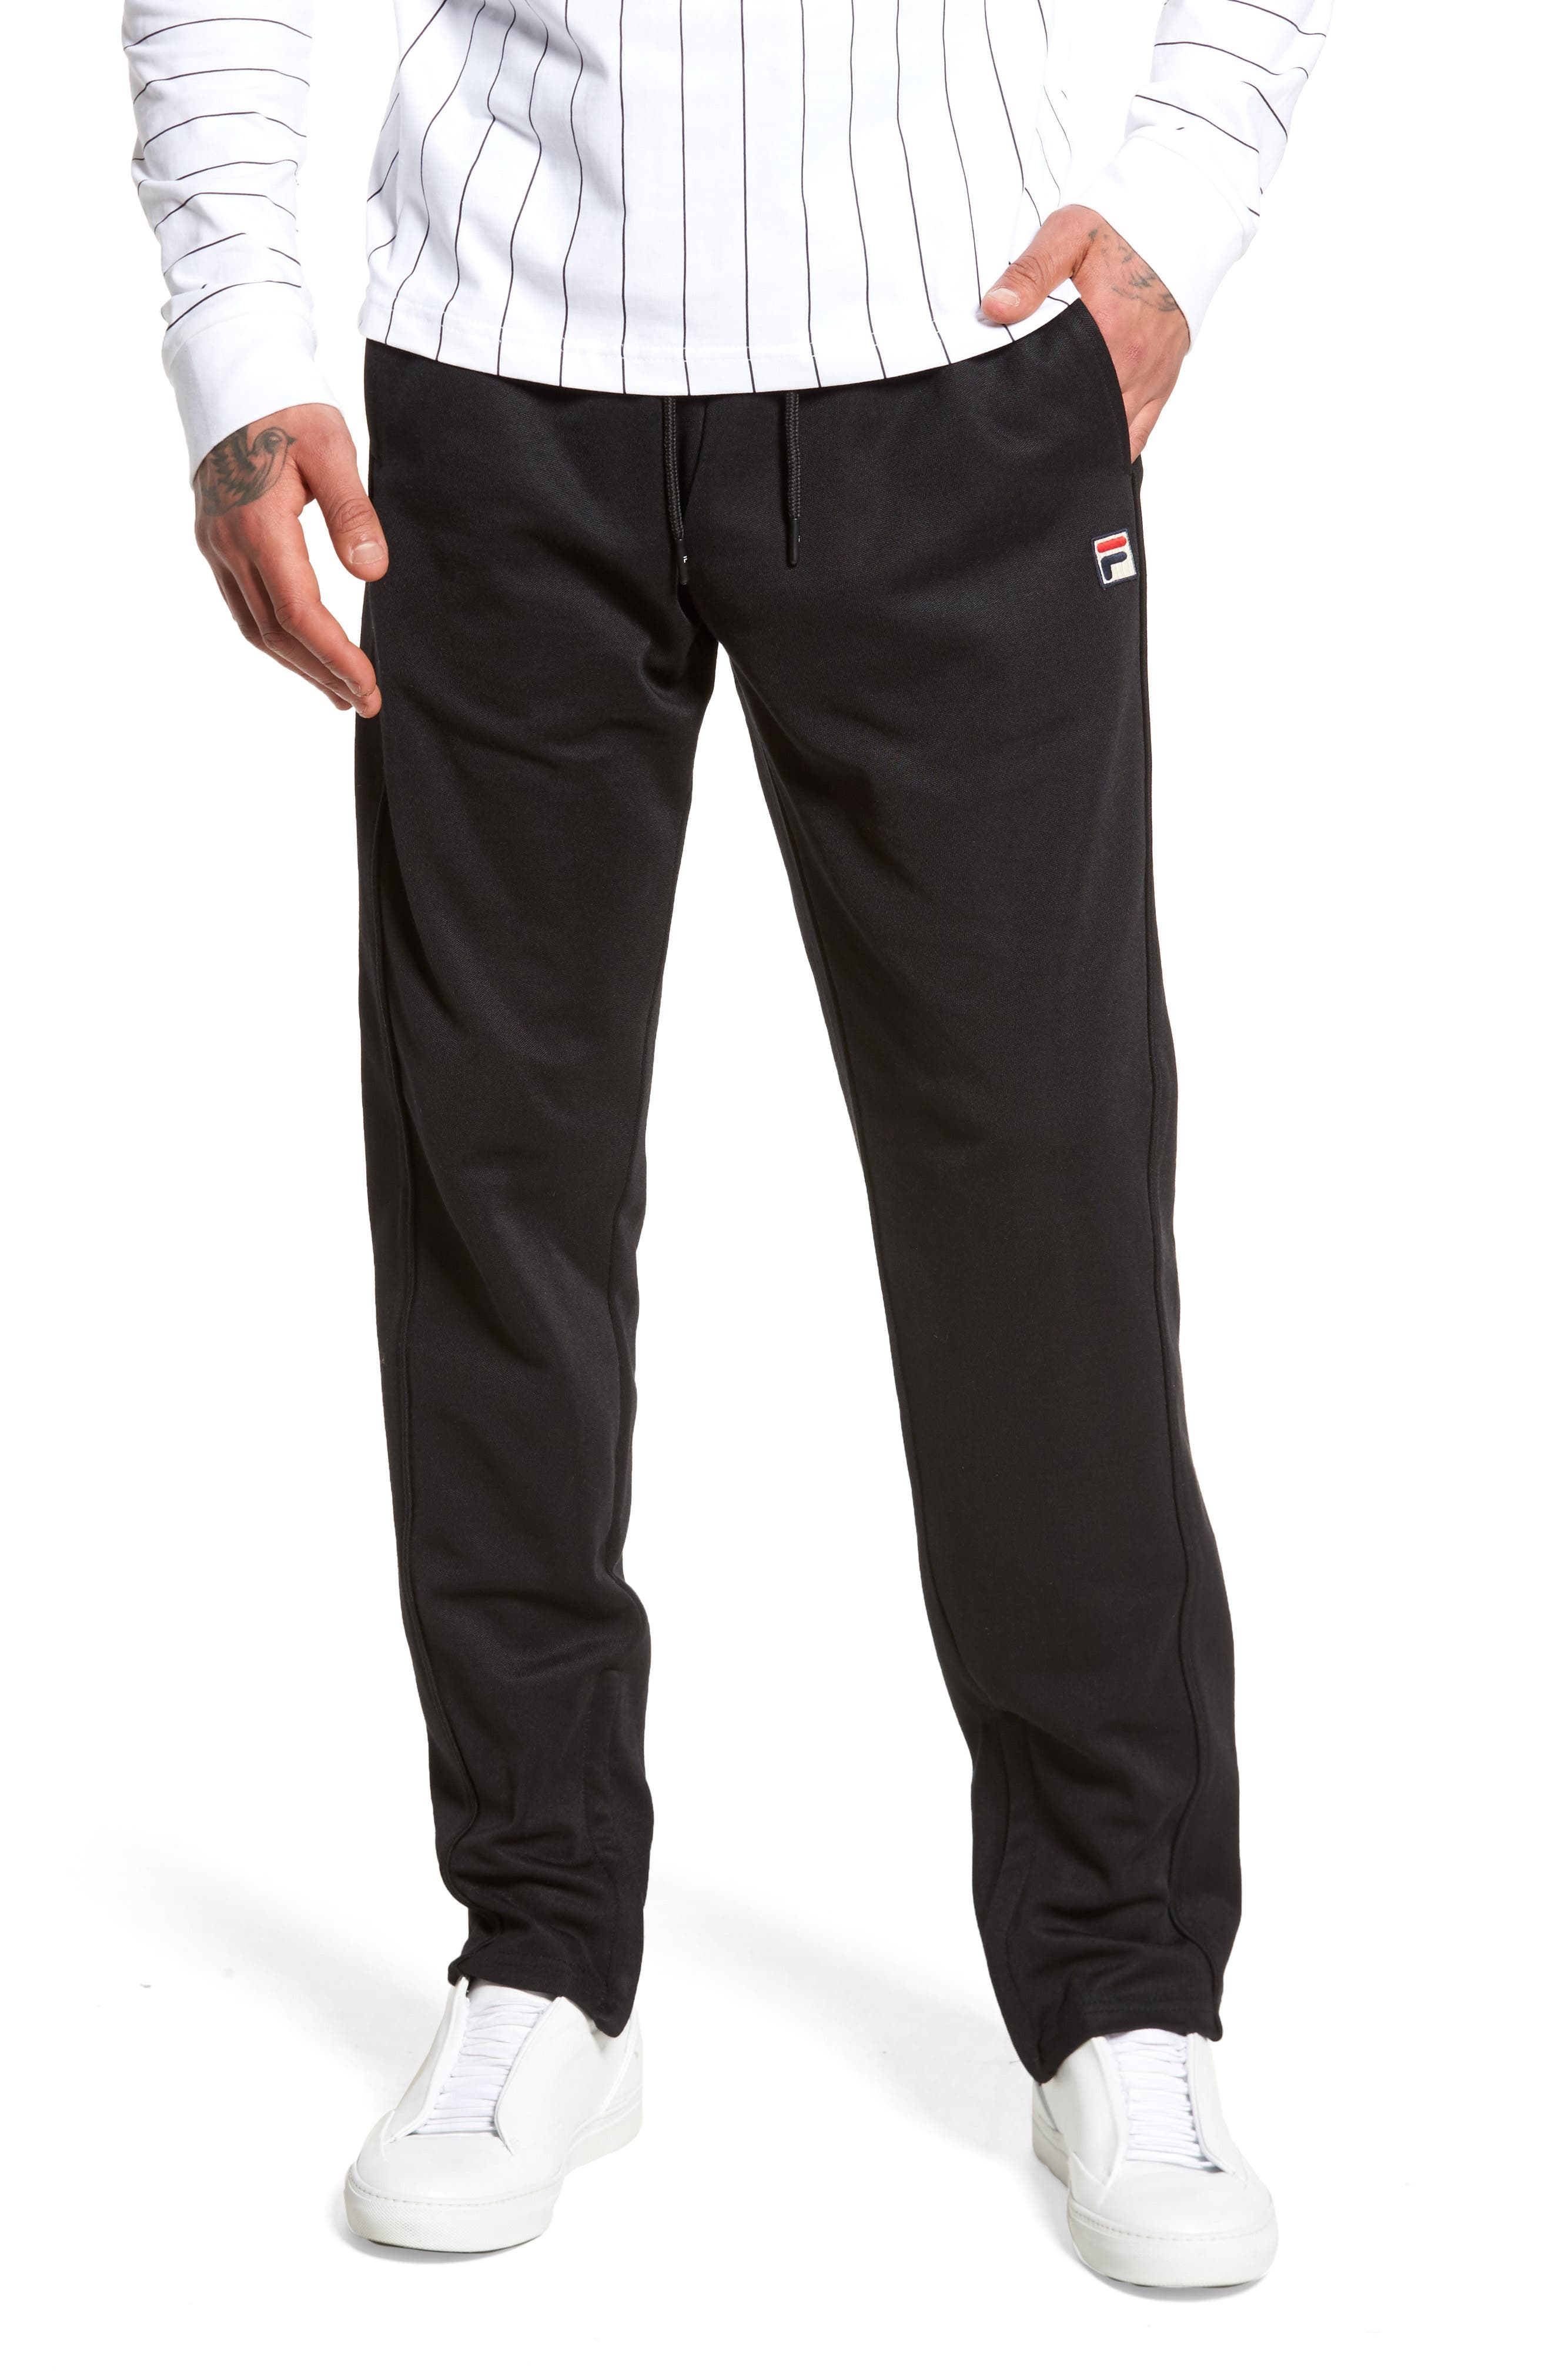 Bianchi Pants,                             Main thumbnail 1, color,                             Black